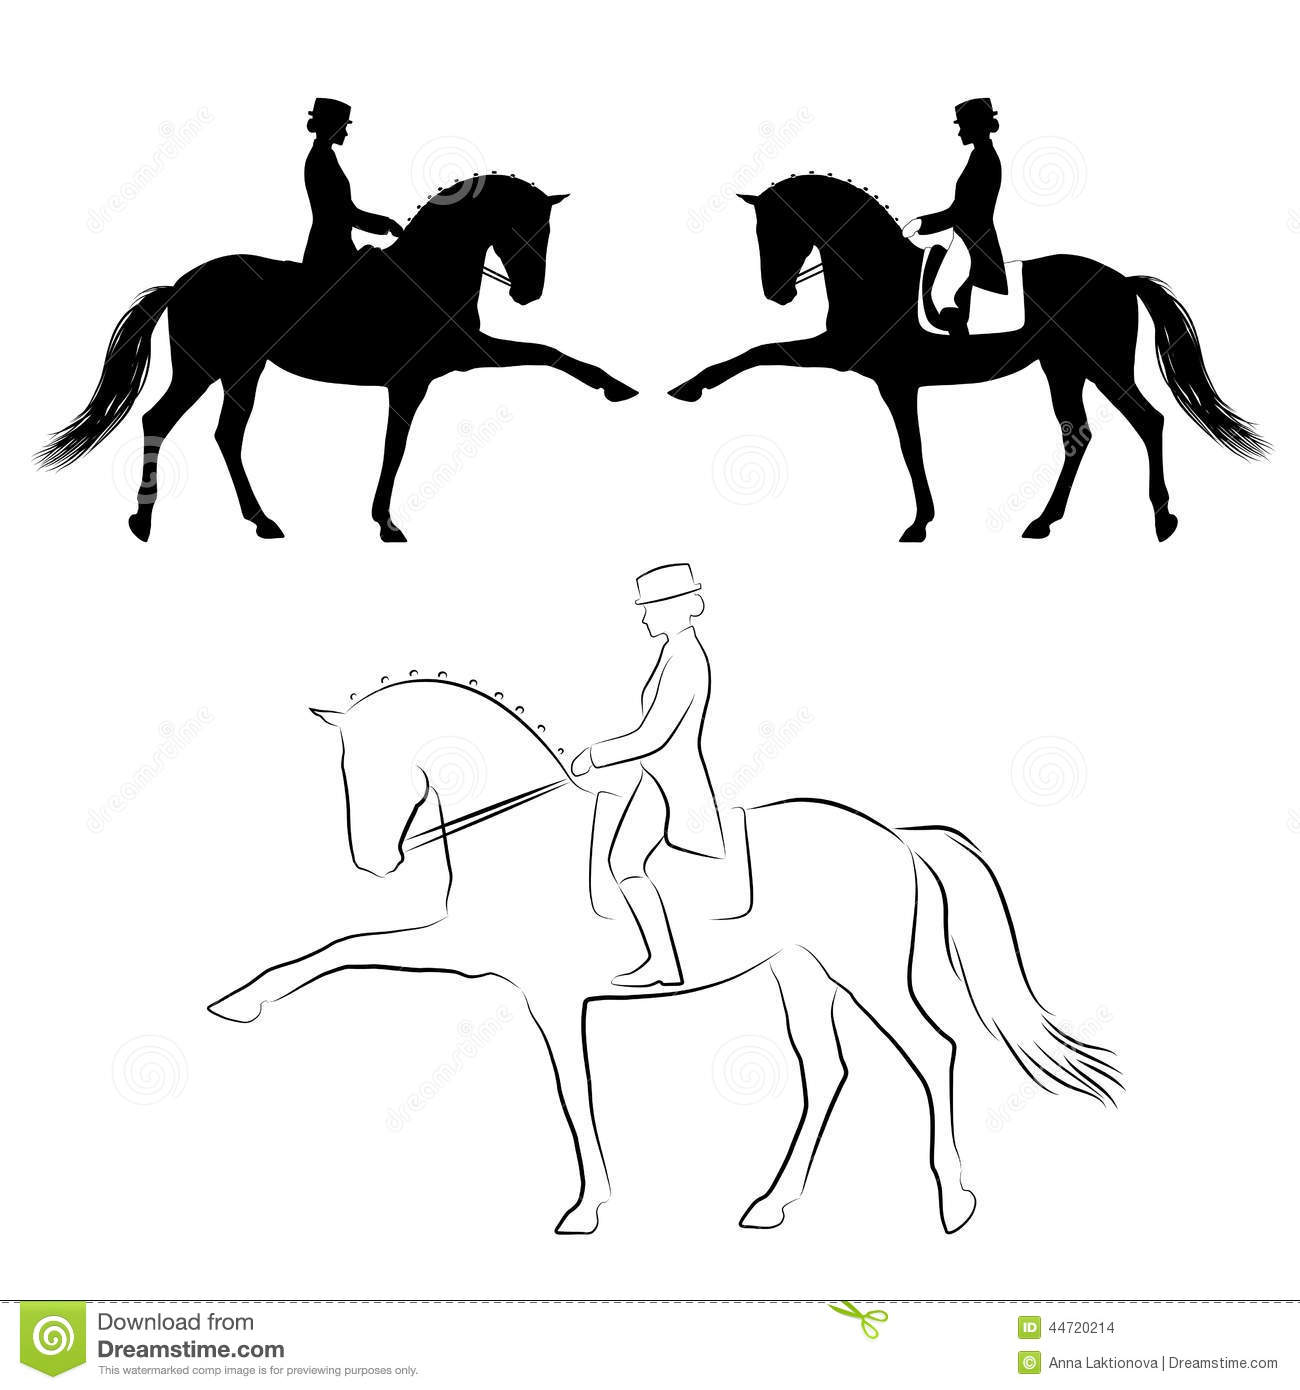 Dressage Spanish Walk Stock Vector - Image: 44720214